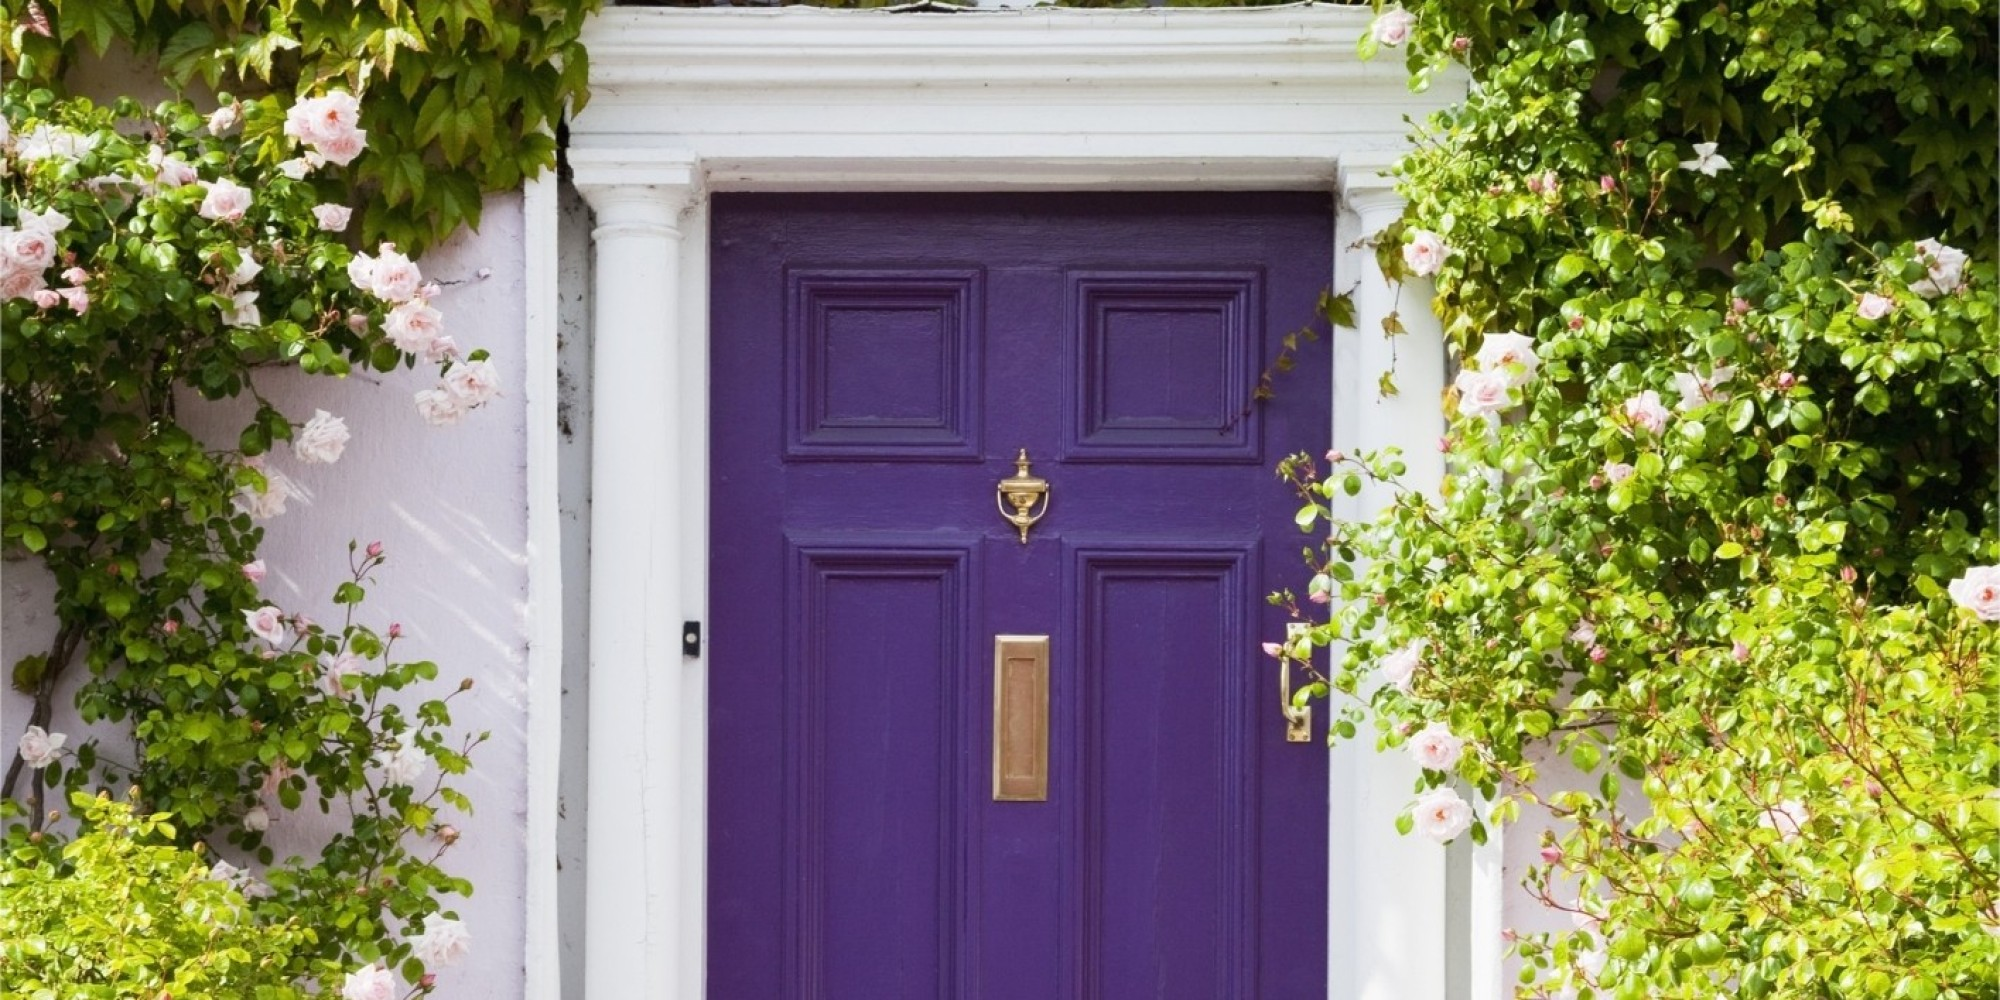 1000 #4D5E11 The 3 Things Homes With Great Curb Appeal Have In Common HuffPost wallpaper Purple Front Doors 47052000